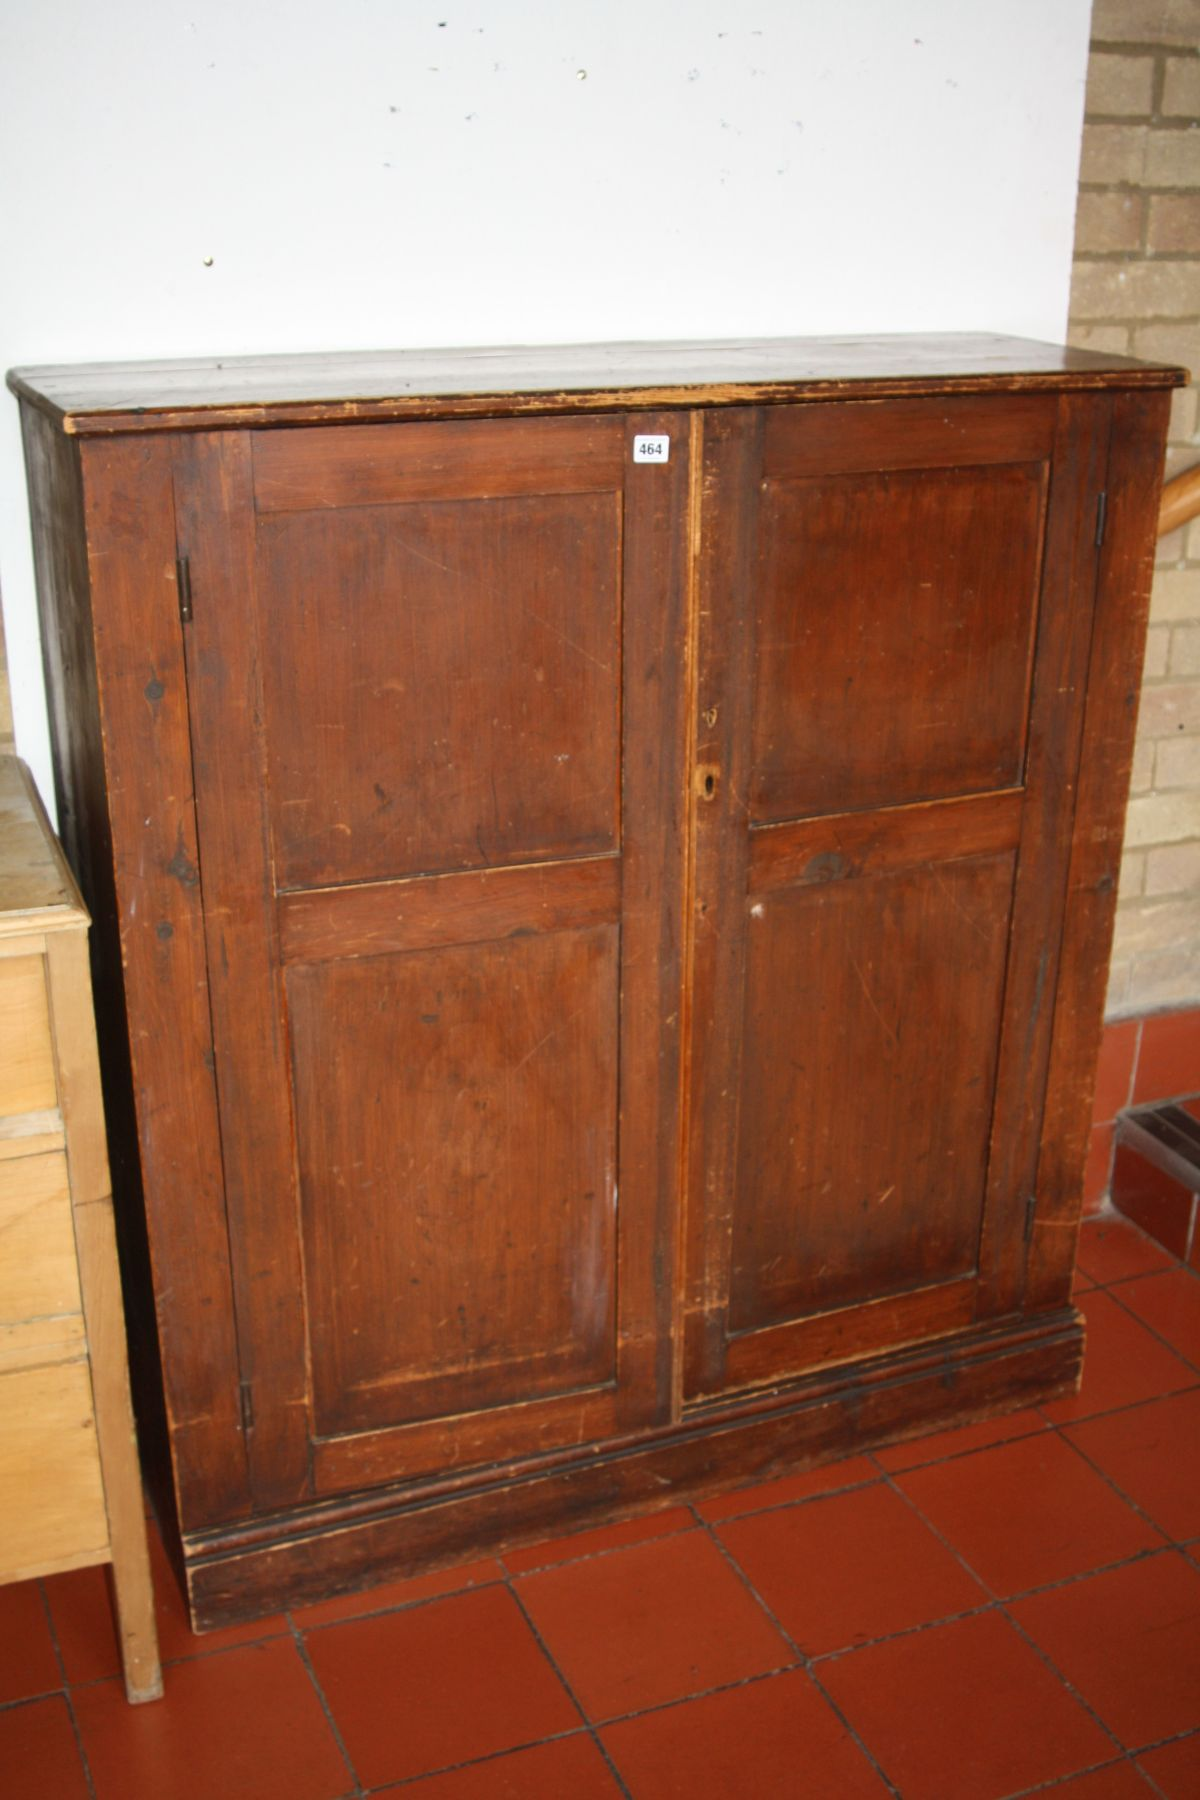 Lot 464 - A STAINED PINE EDWARDIAN TWO DOOR CUPBOARD, with two full and one half shelves to the interior